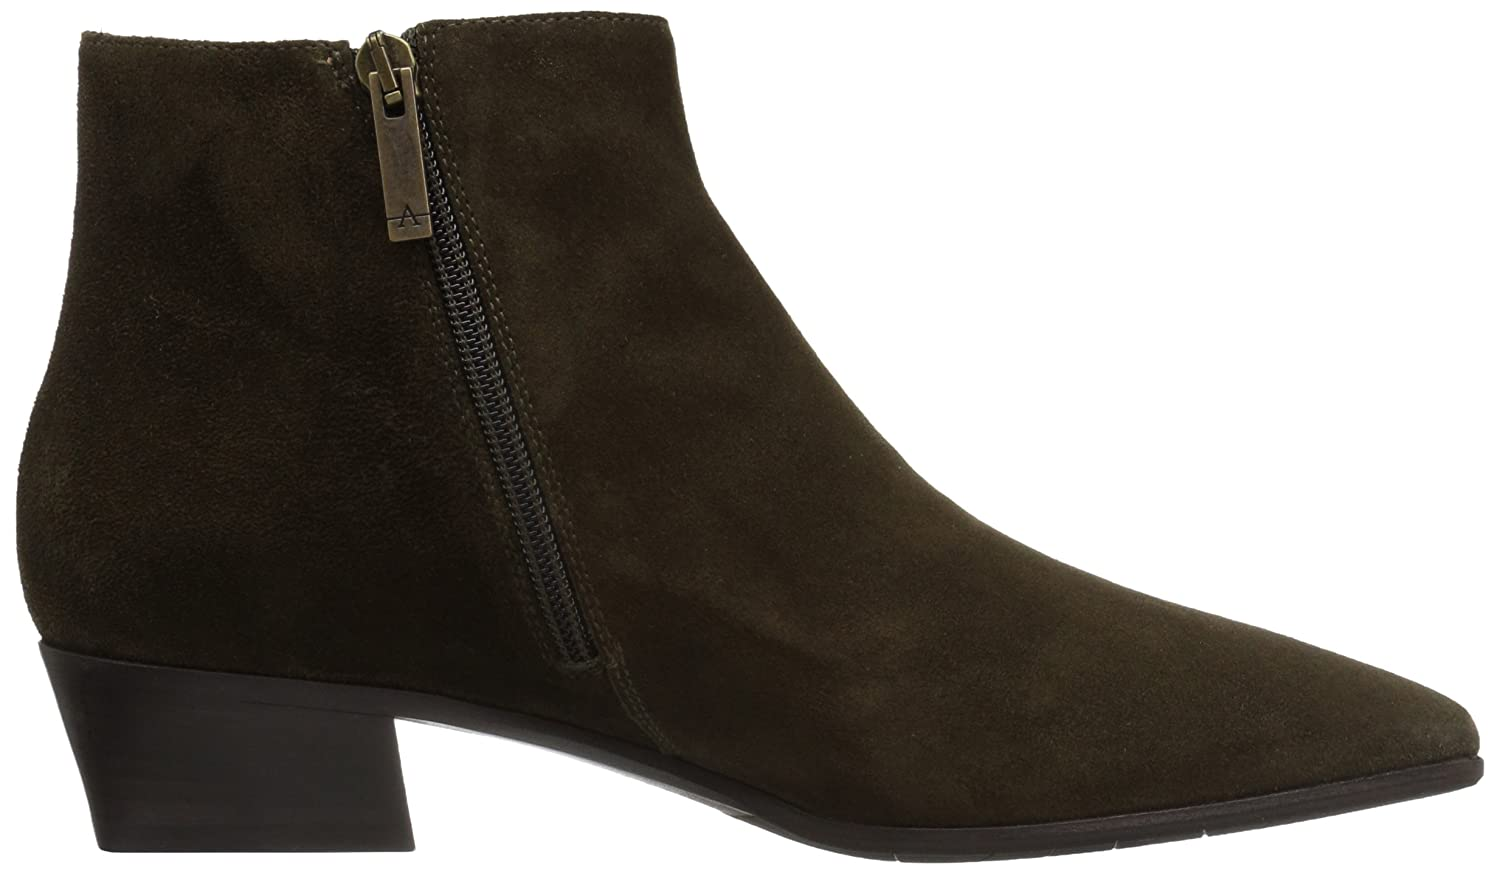 Aquatalia Boot Women's Fire Suede Ankle Boot Aquatalia B06WVBFY5Y 7.5 M US|Olive 11a225